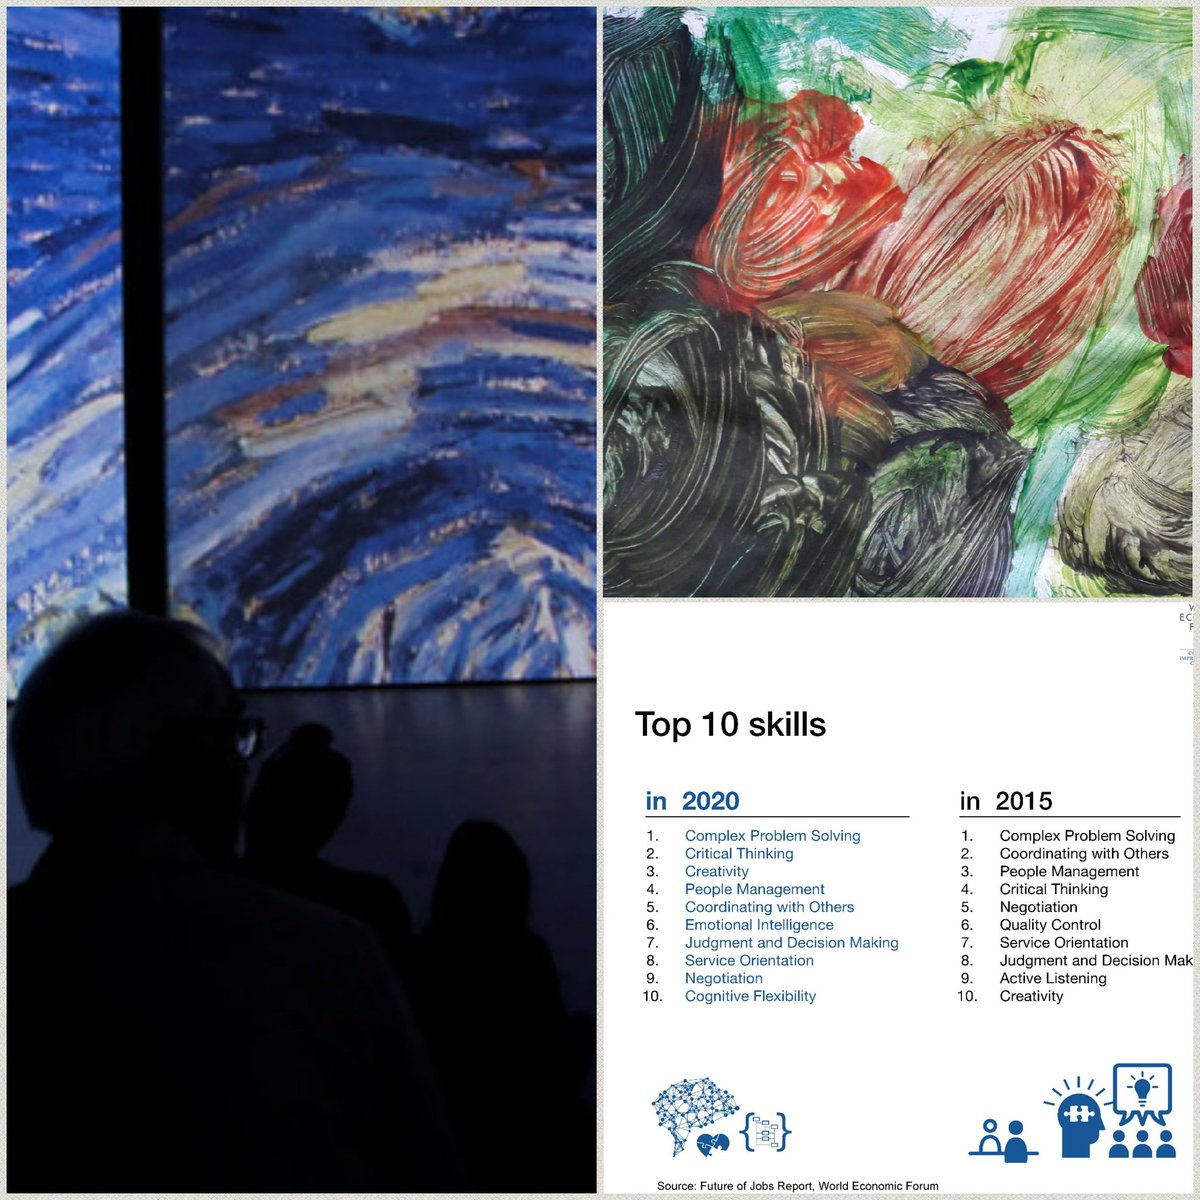 ■ #Creativity is an essential human ability, allowing adaptation and survival [ ... #DigitalAge]. Can you #train yourself to become more imaginative?  Read, learn, play, experiment  https:// bit.ly/2Frl9Nz  &nbsp;   v/@wef #Children #Skills  @Zogiot @h_huebner @DrHolzwarth @AngelaNoonUK<br>http://pic.twitter.com/MJLtwQ7rtV